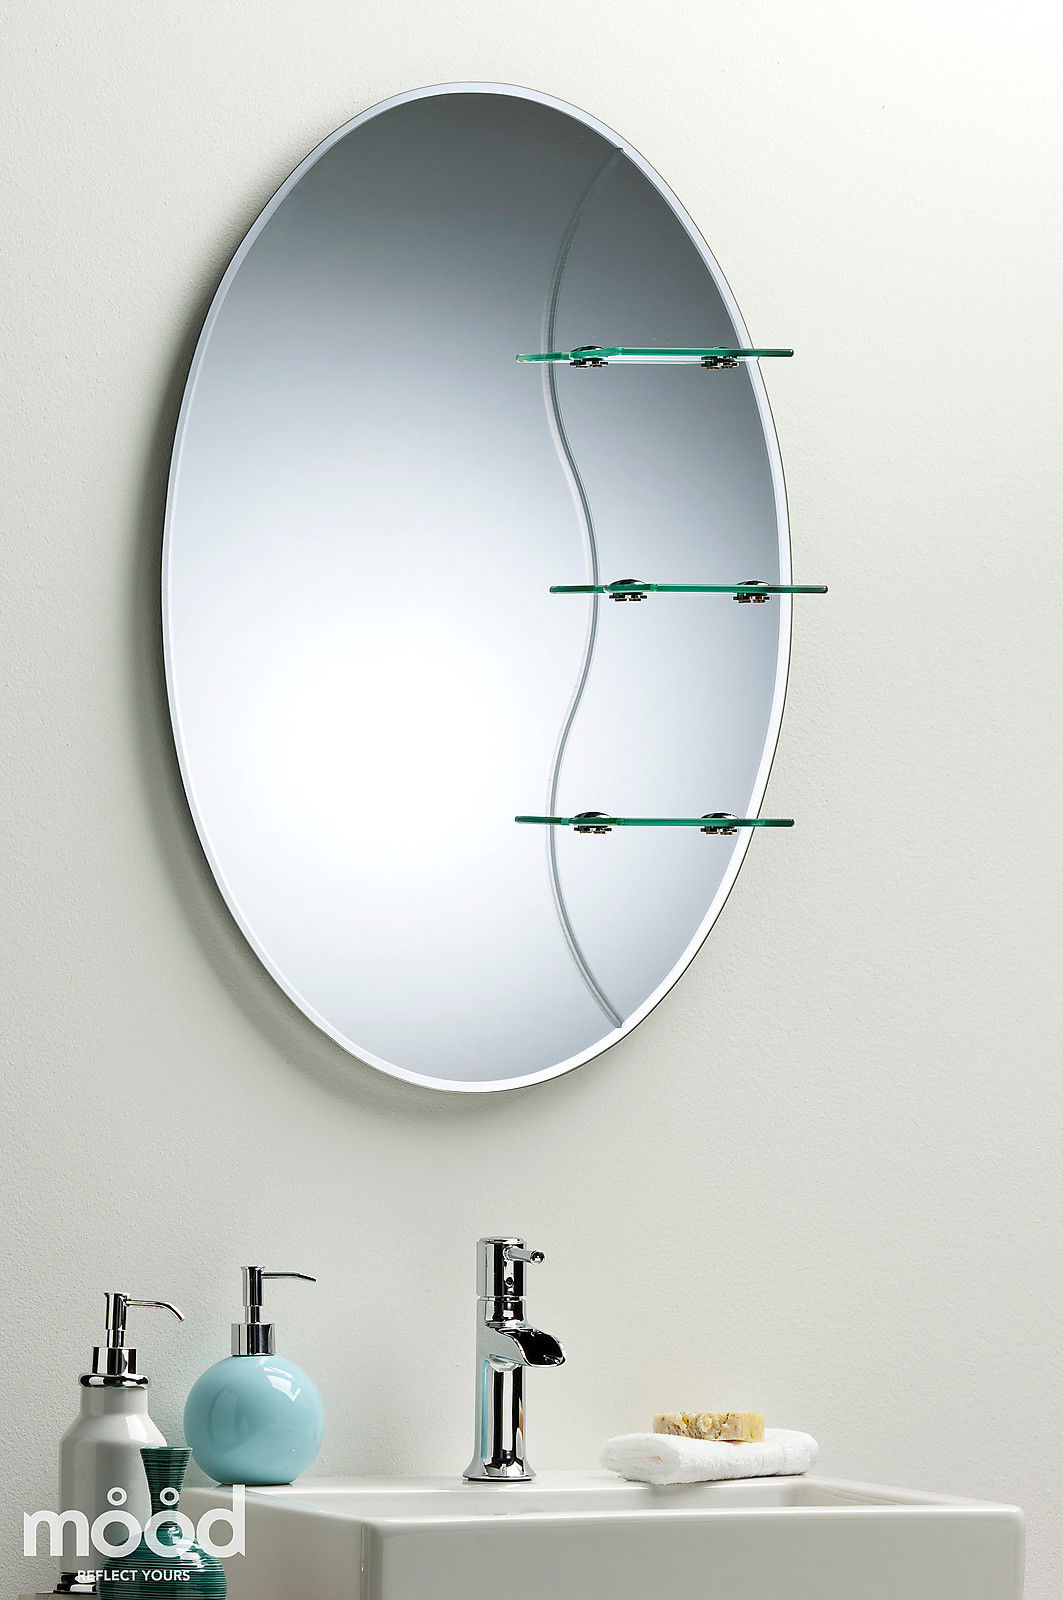 Etched bathroom mirror elegant oval with shelf wall mounted plain ebay Neue design bathroom mirror